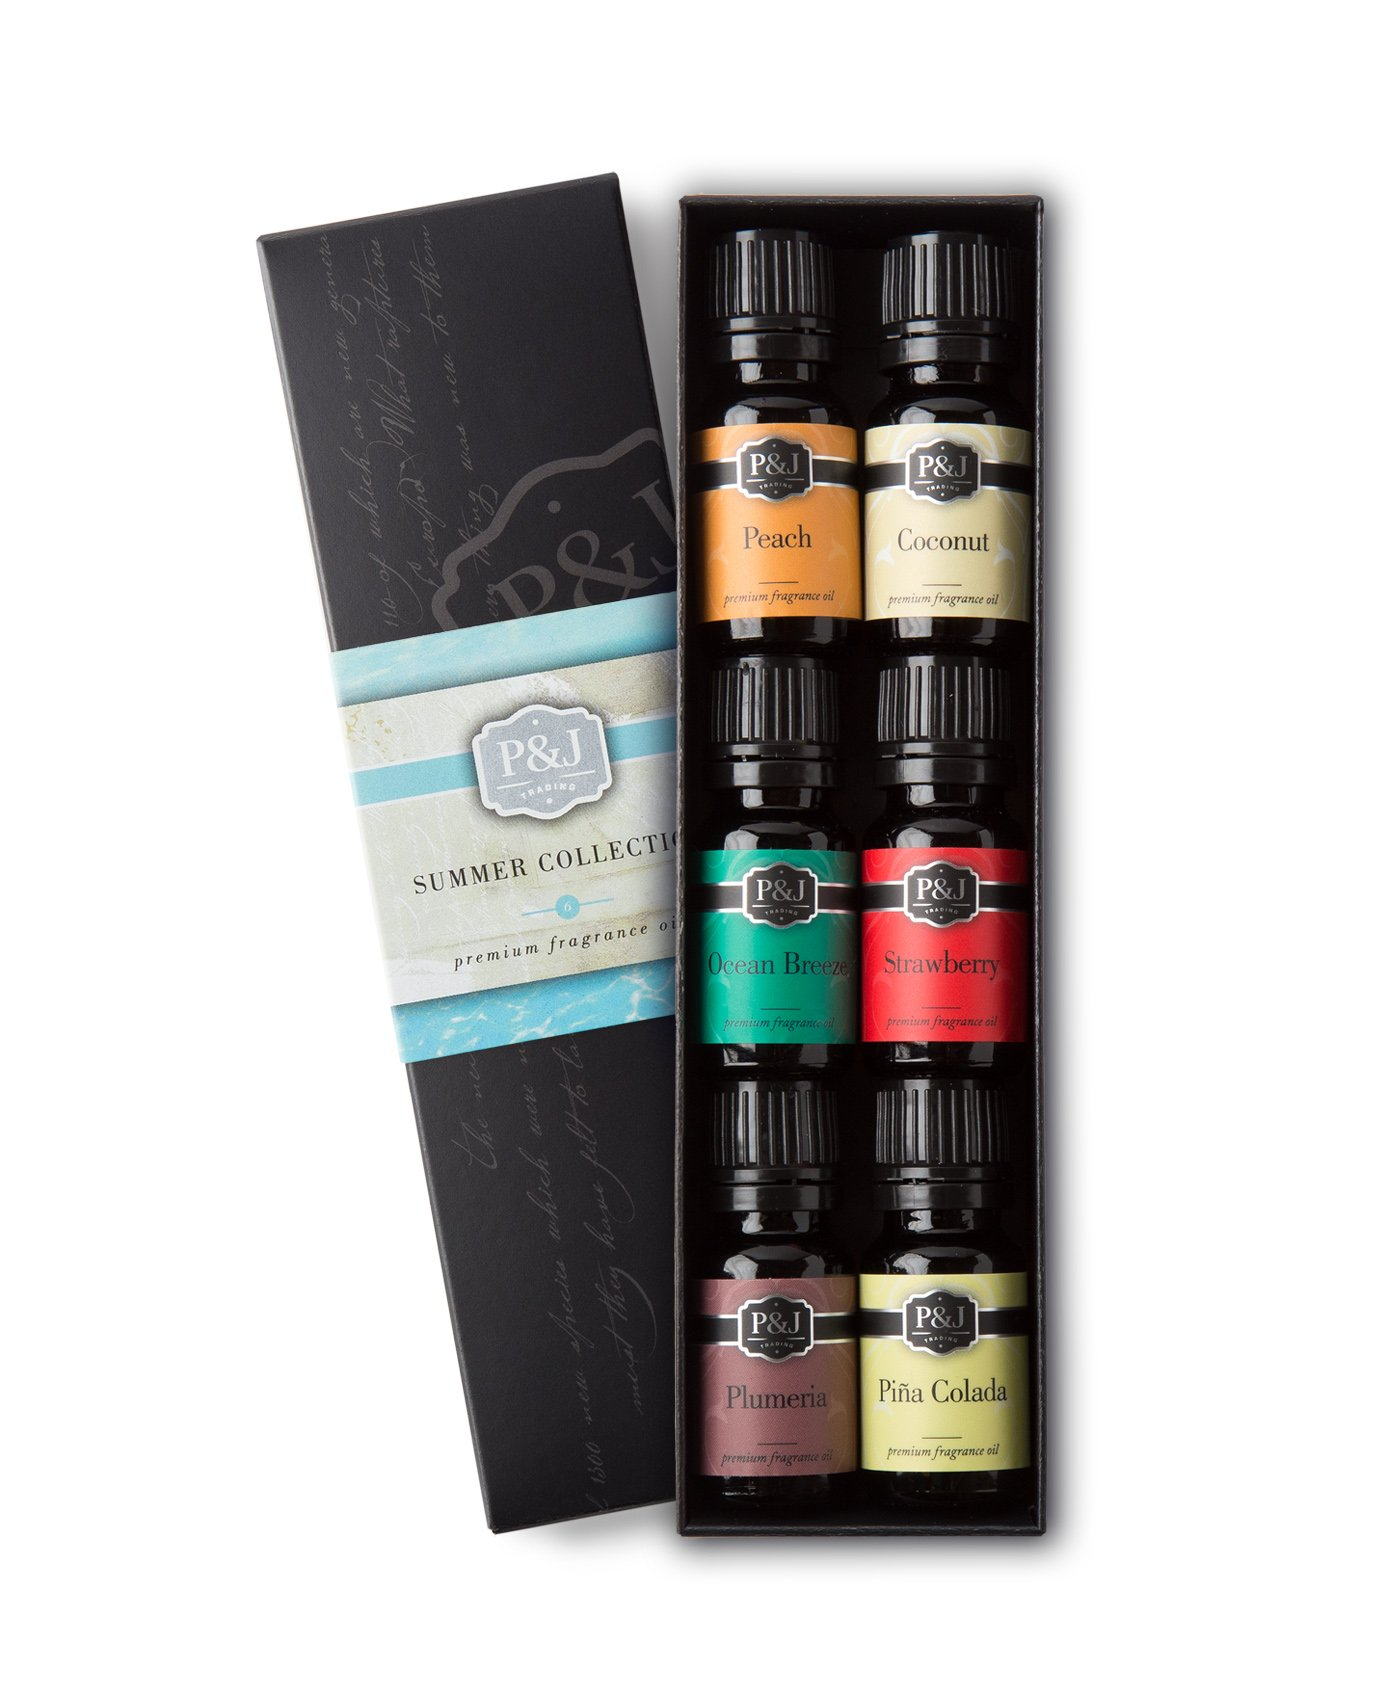 P&J Trading Summer Set of 6 Premium Grade Fragrance Oils - Peach, Strawberry, Plumeria, Coconut, Ocean Breeze, Pina Colada - 10ml